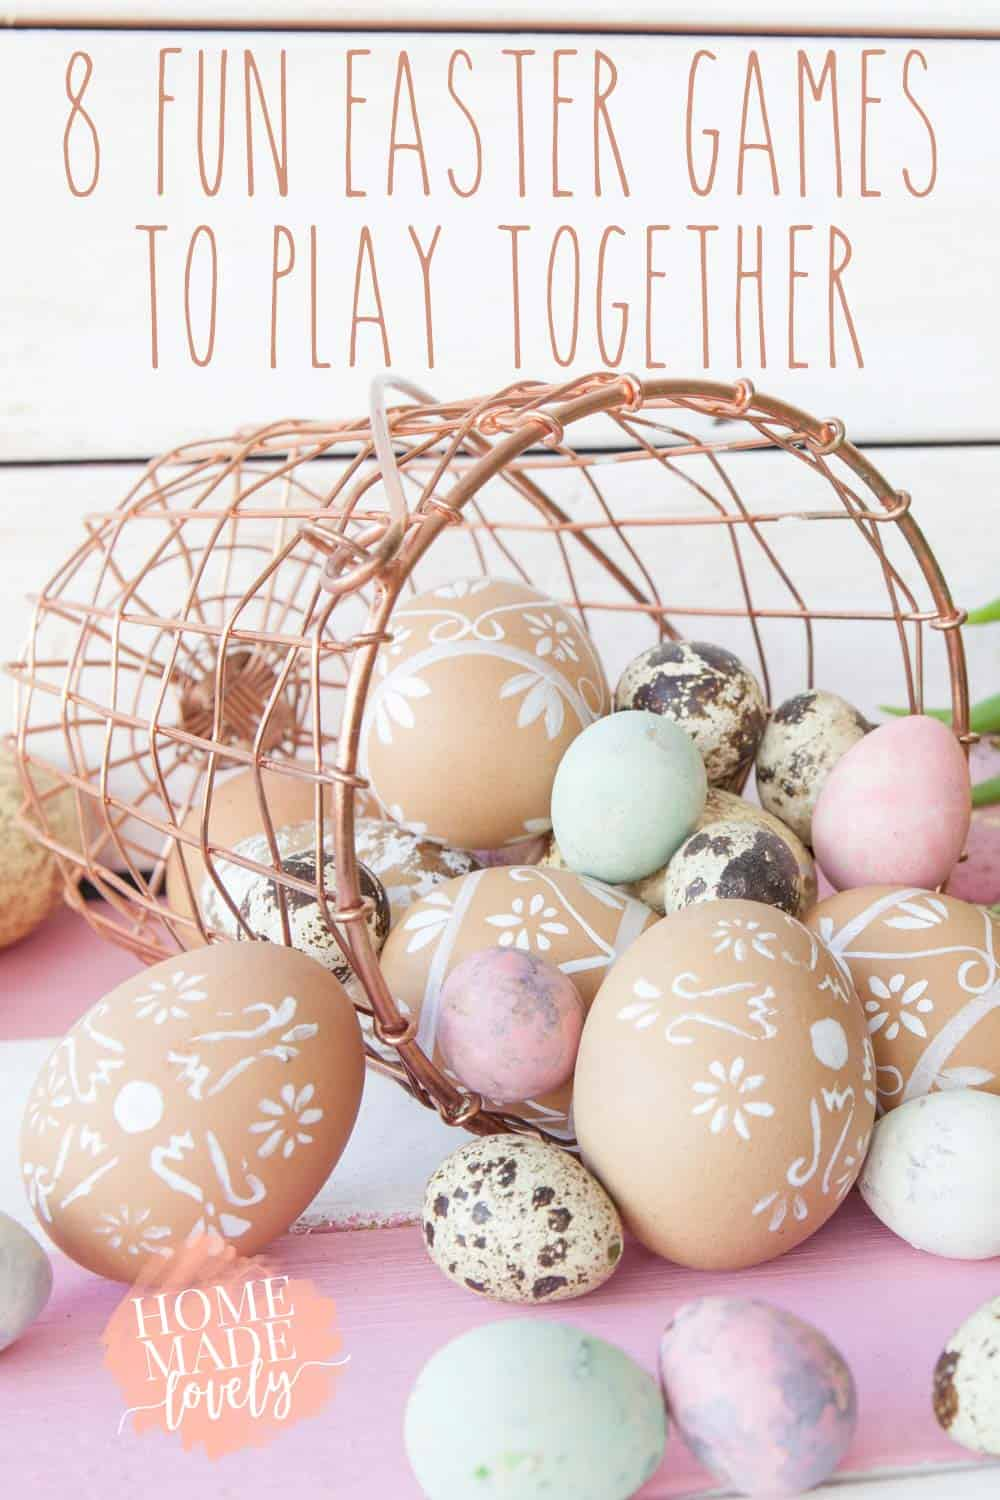 easter eggs in a basket - Part of the fun of Easter weekend is playing fun family games together. Here are 8 fun Easter games to play with your family this year!